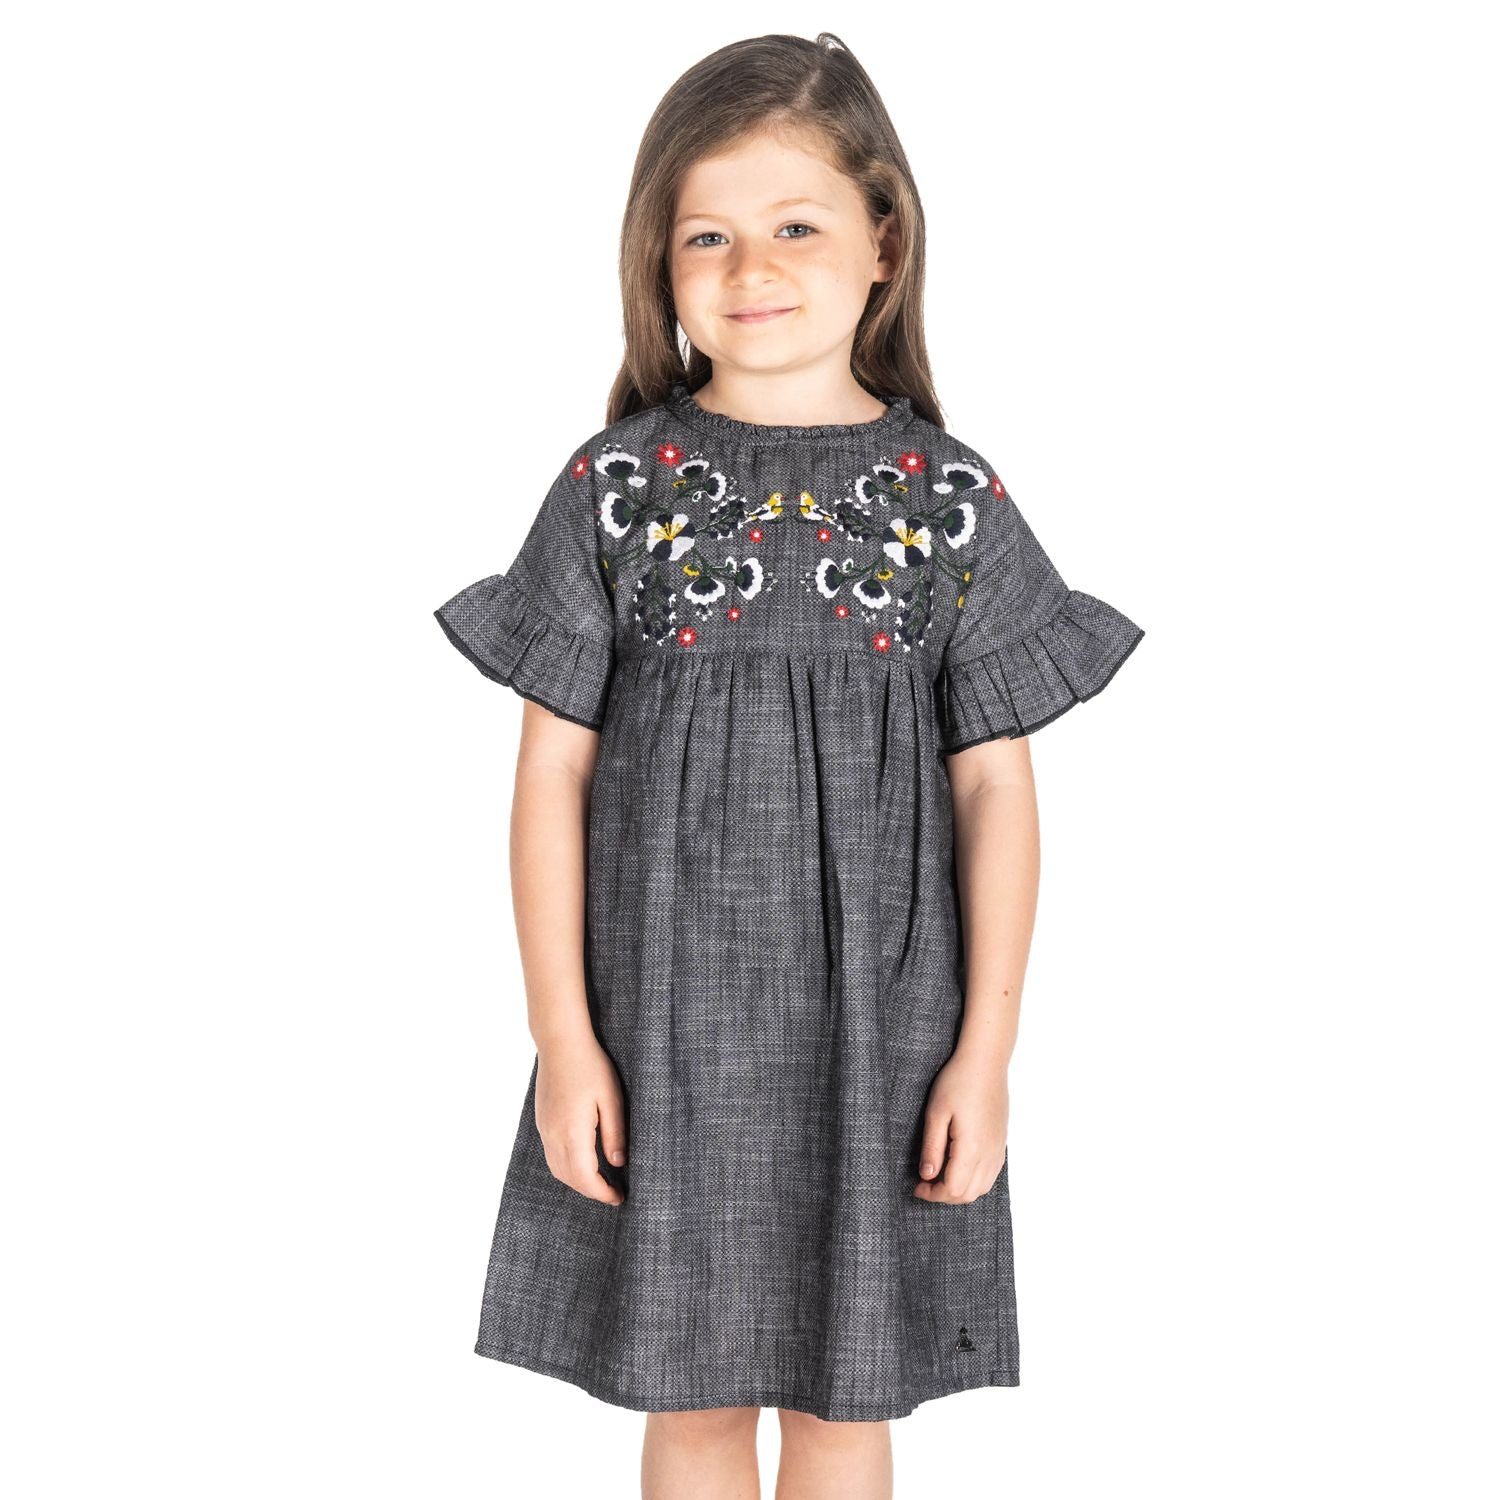 Evoo Dress for Girls